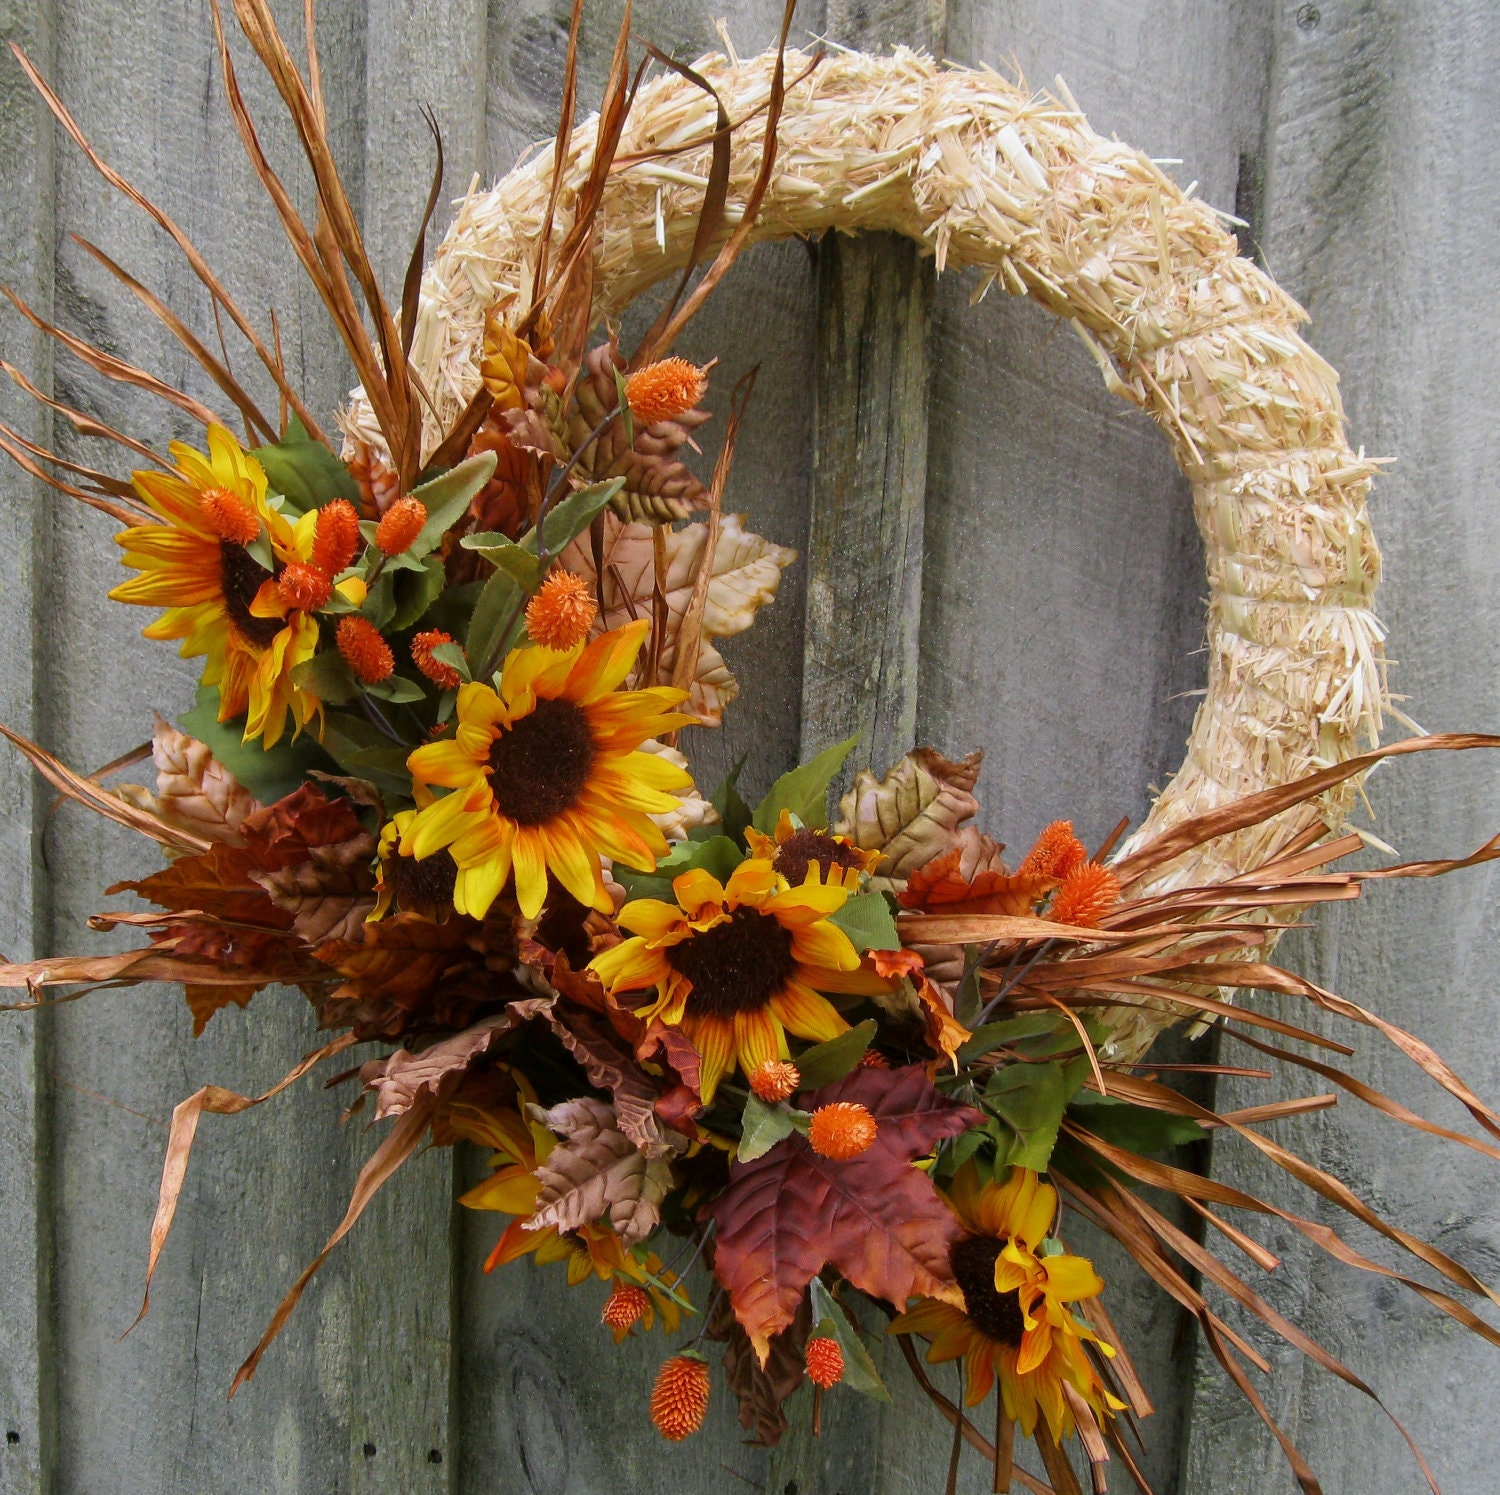 Sale wreath fall wreaths autumn straw wreath sunflowers Fall autumn door wreaths